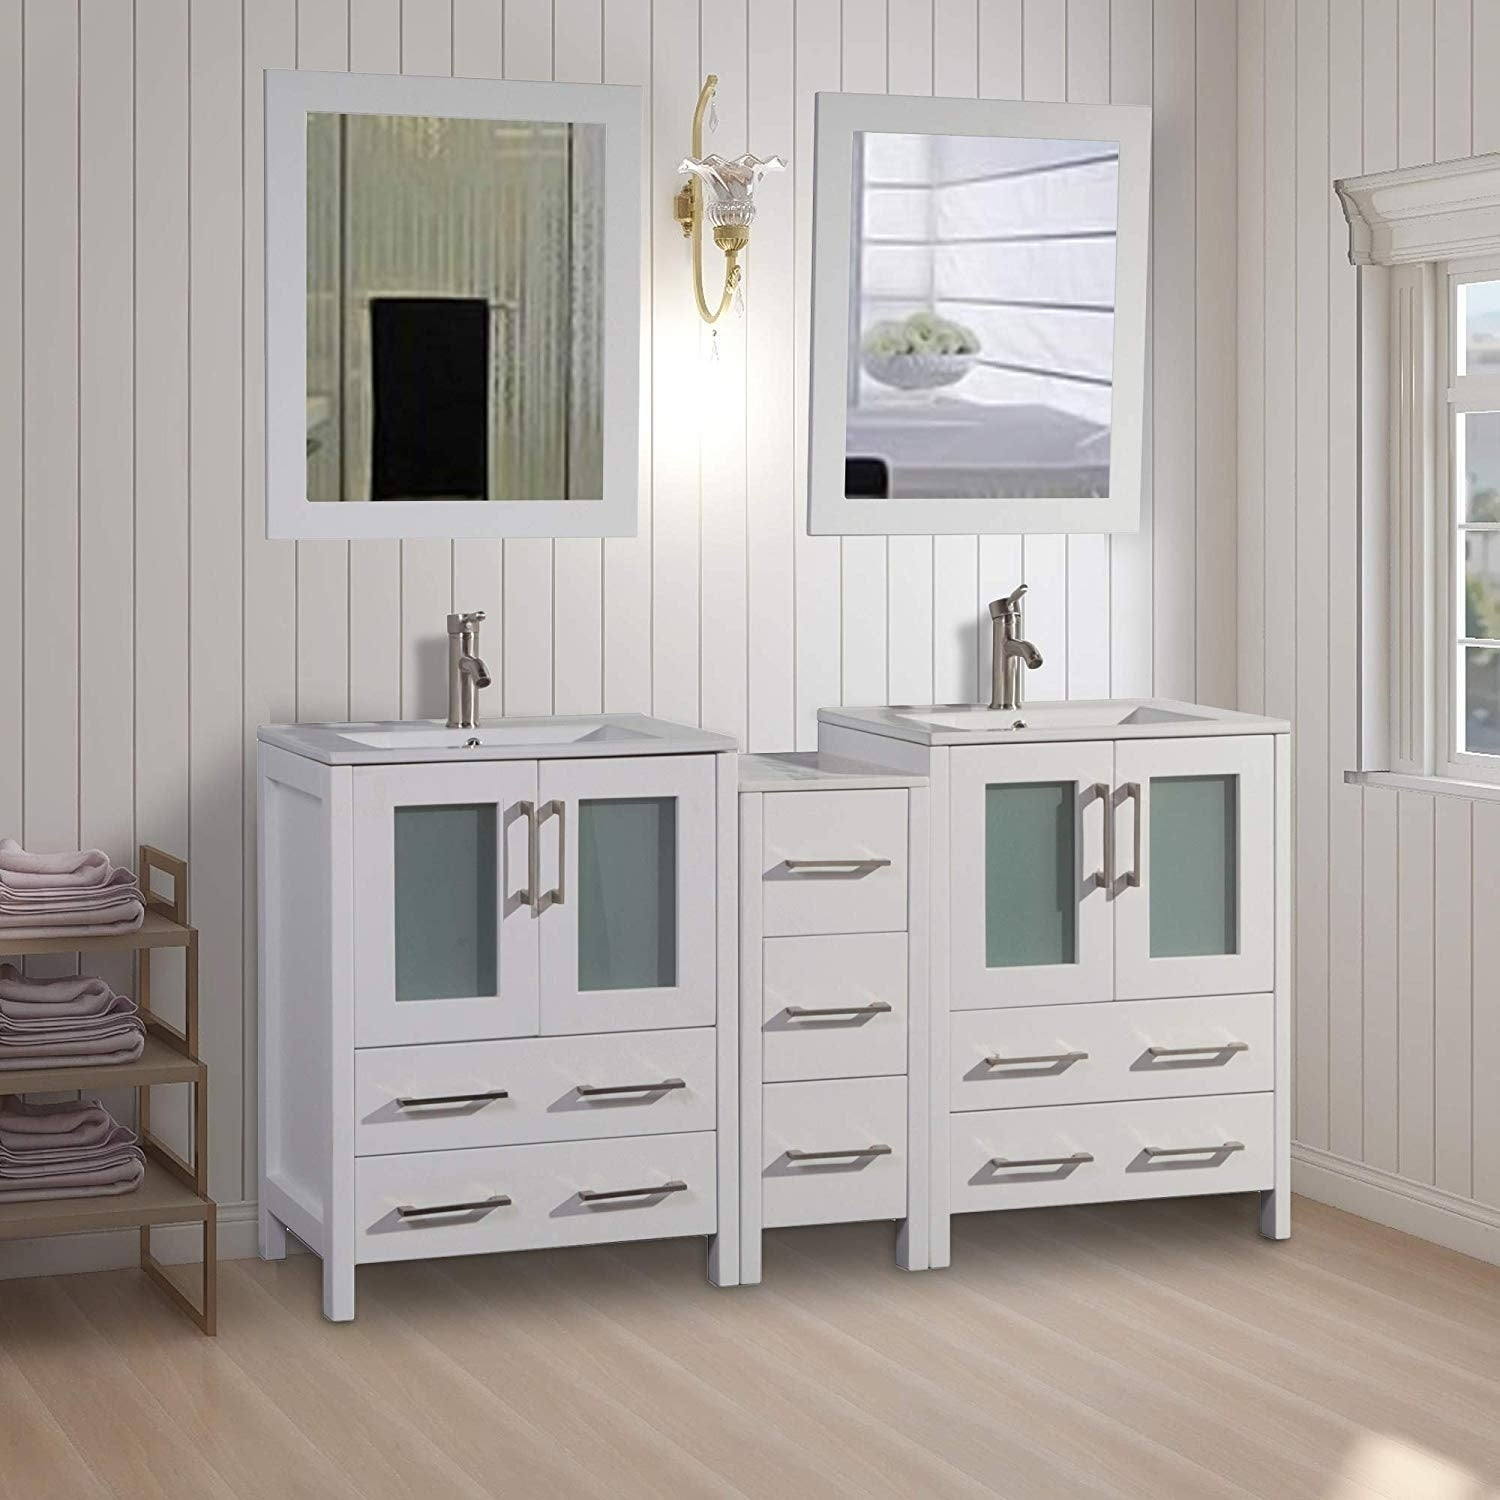 Vanity Art 72 Inch Double Sink Bathroom Vanity Set 7 Drawers 2 Cabinets 2 Shelves Soft Closing Doors With Free Mirror Overstock 12609986